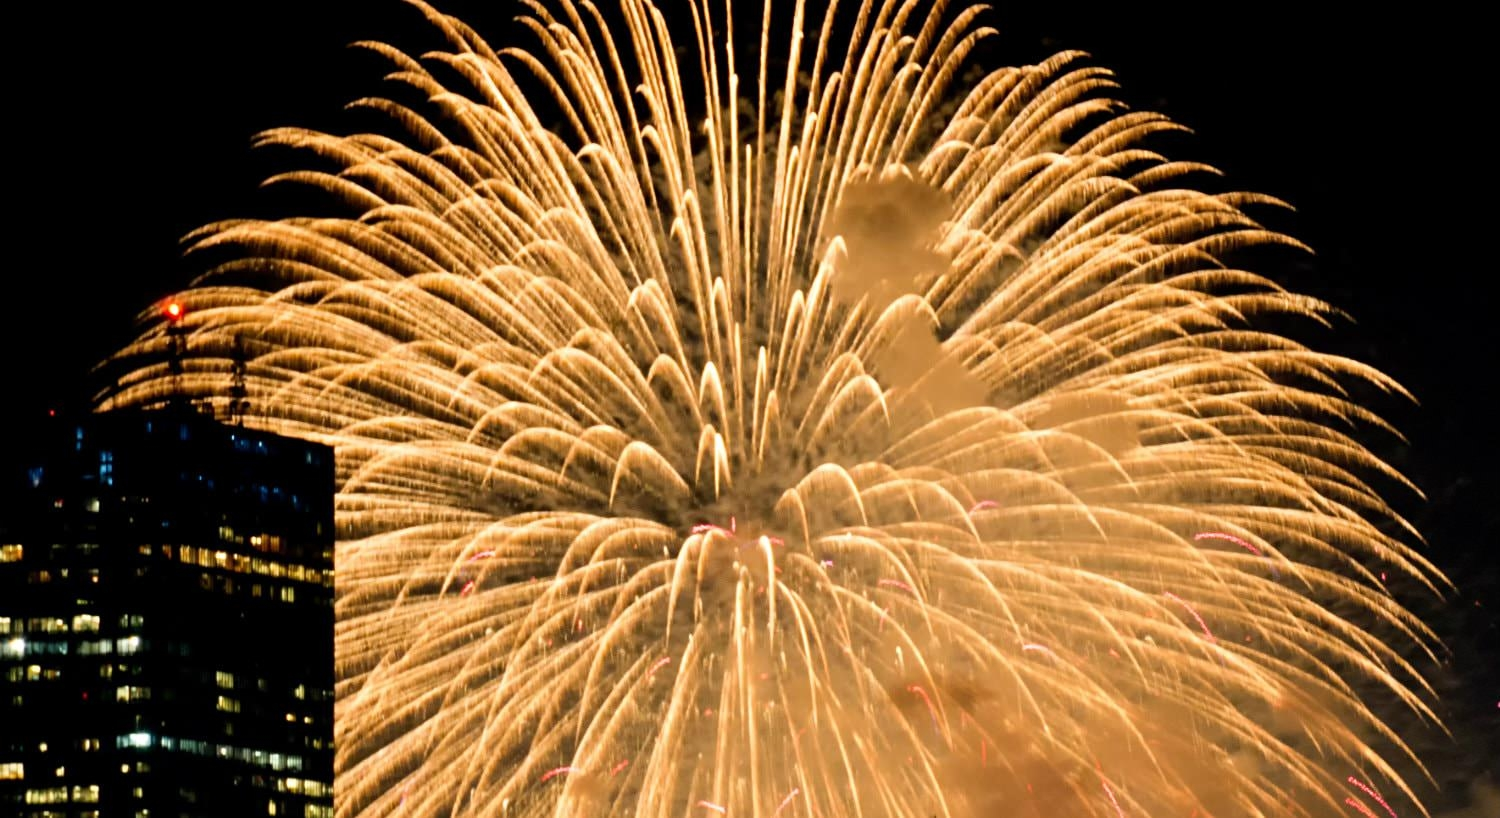 Large yellow burst of fireworks against a black sky